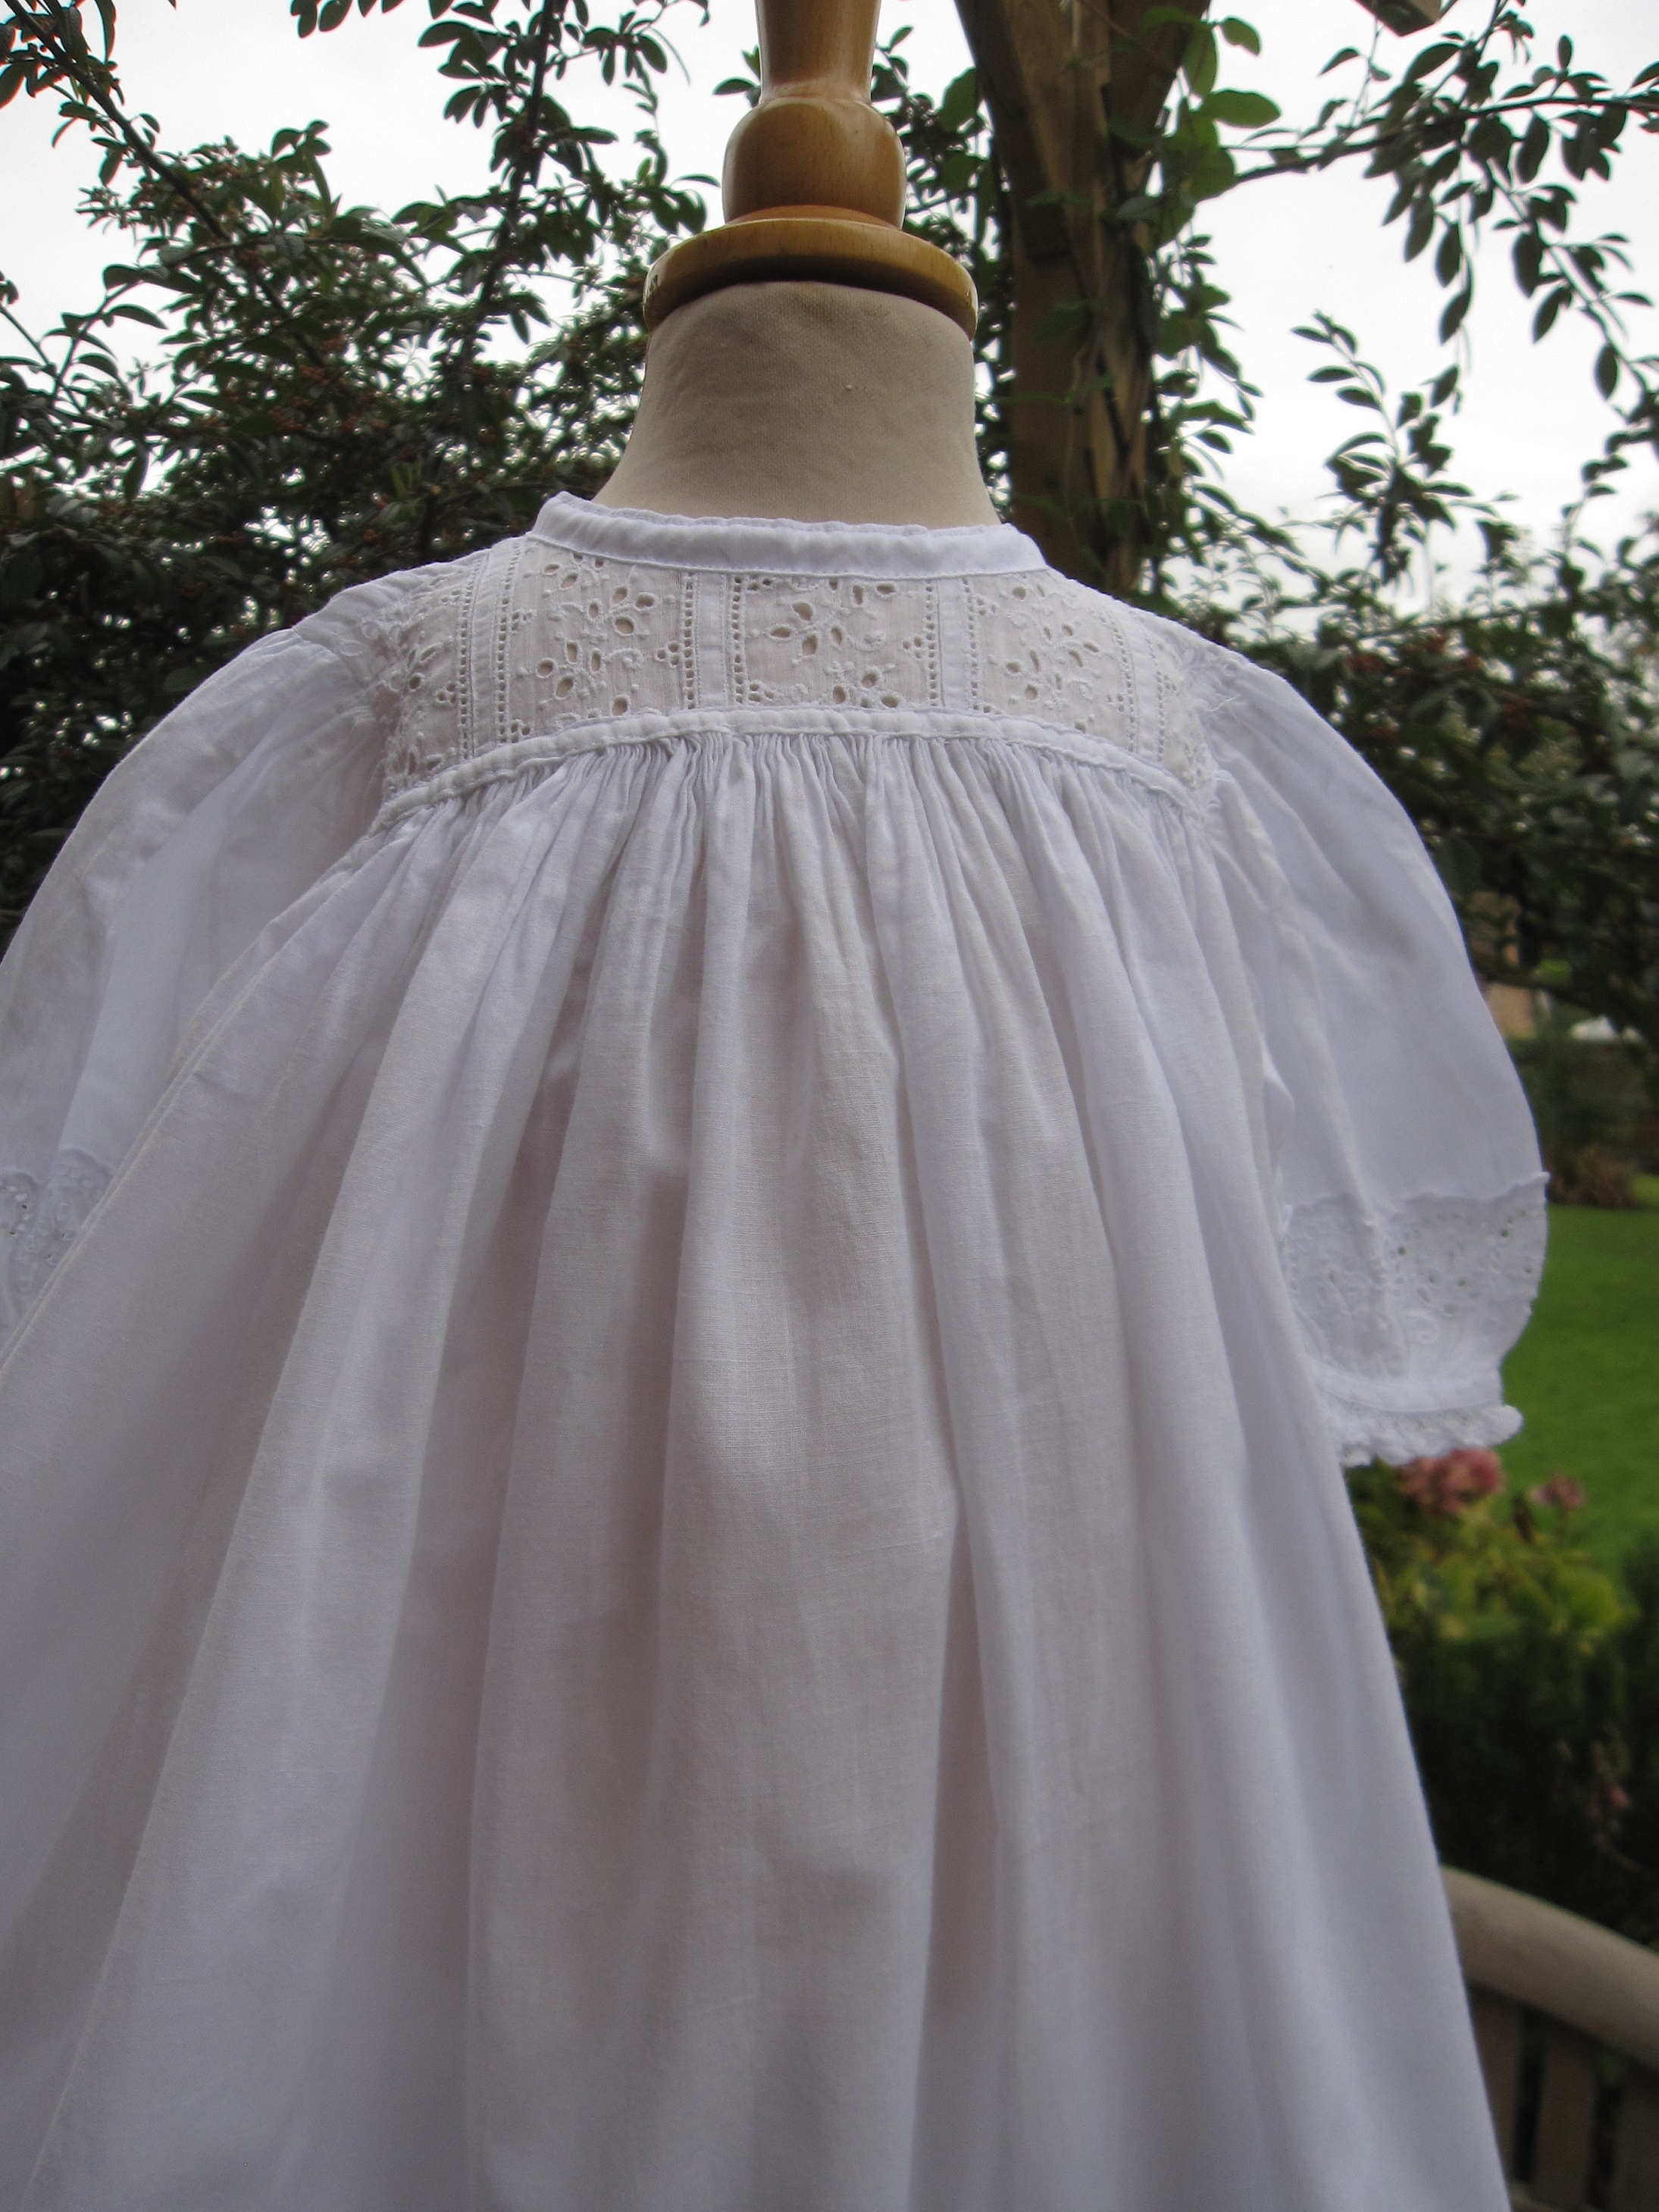 christening-gowns-little-doves-emily-half-view